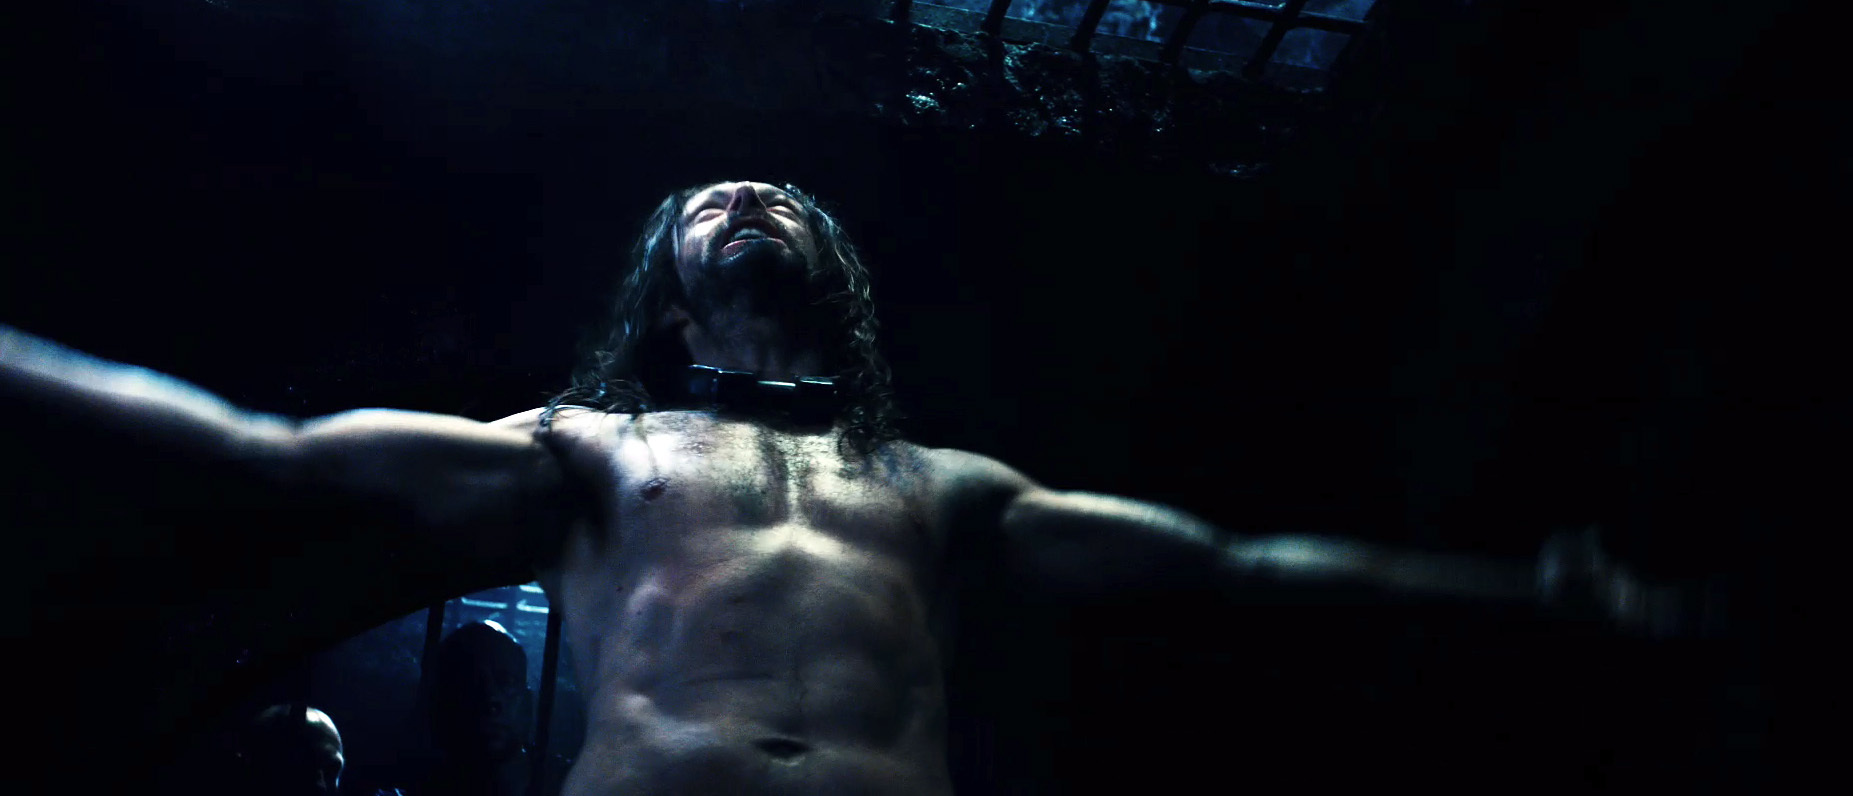 Underworld Rise of the Lycans screencaps - Michael Sheen